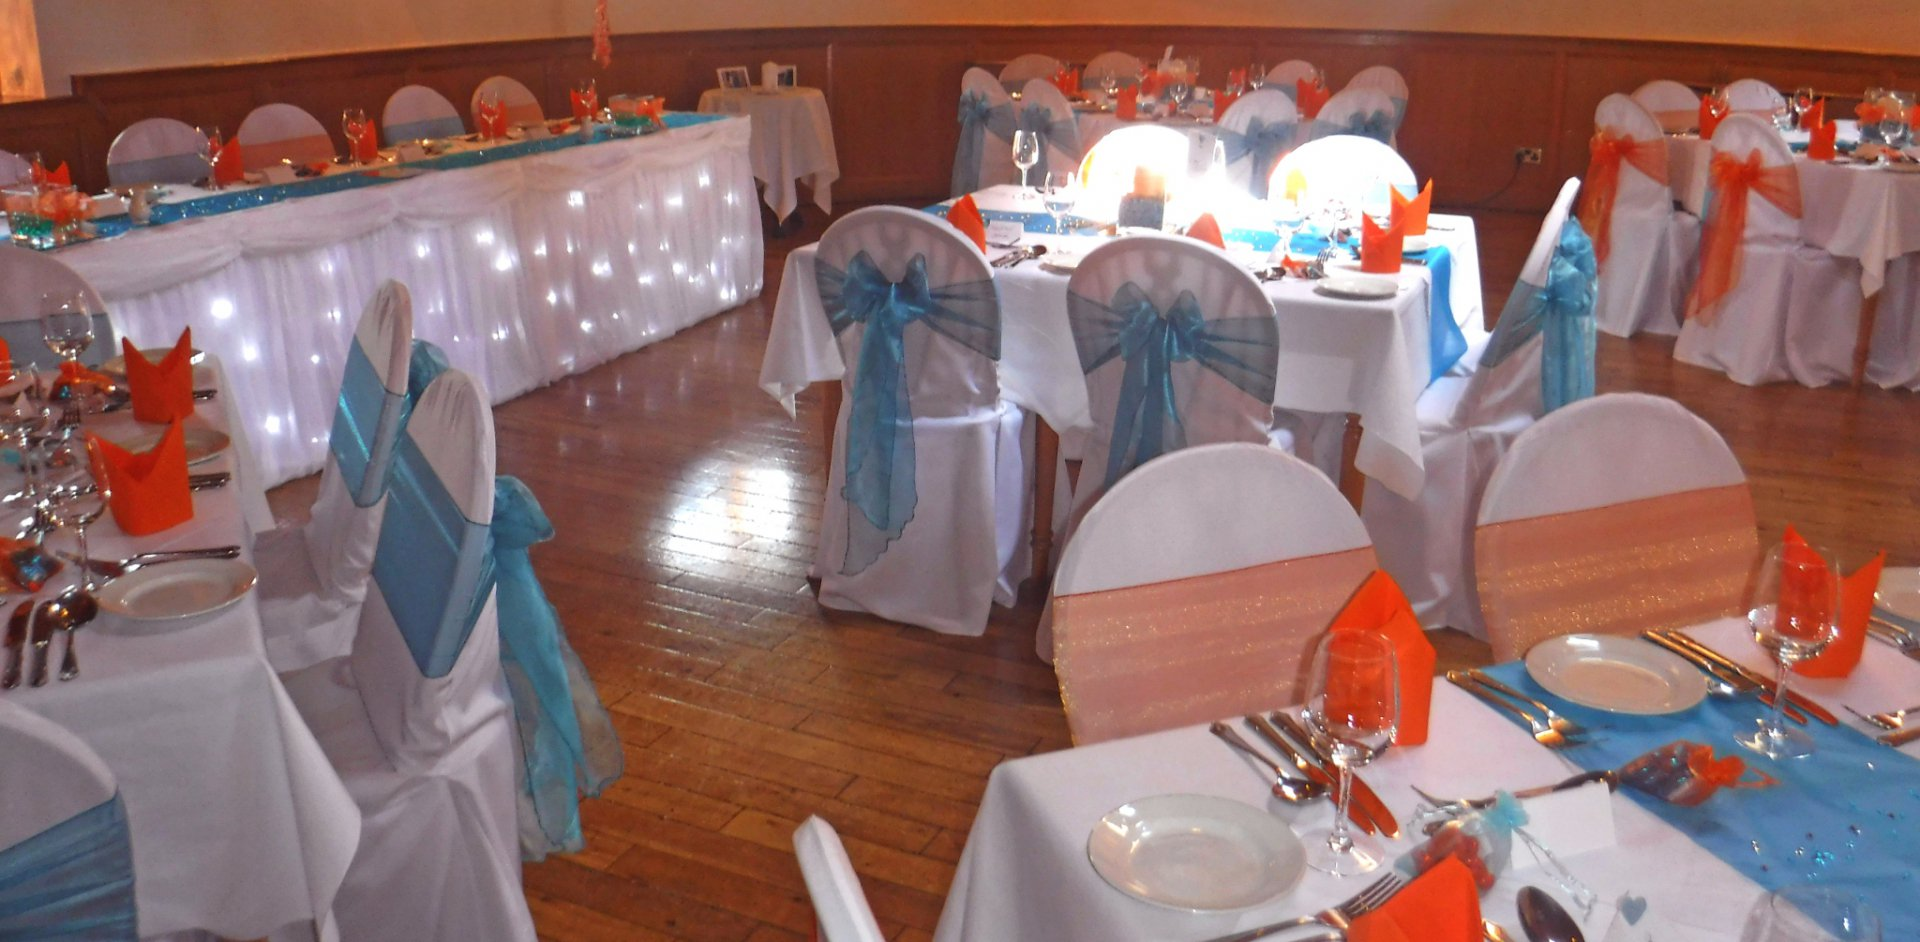 Cheap All Inclusive Wedding Packages from The Mill Forge Hotel near Gretna Green